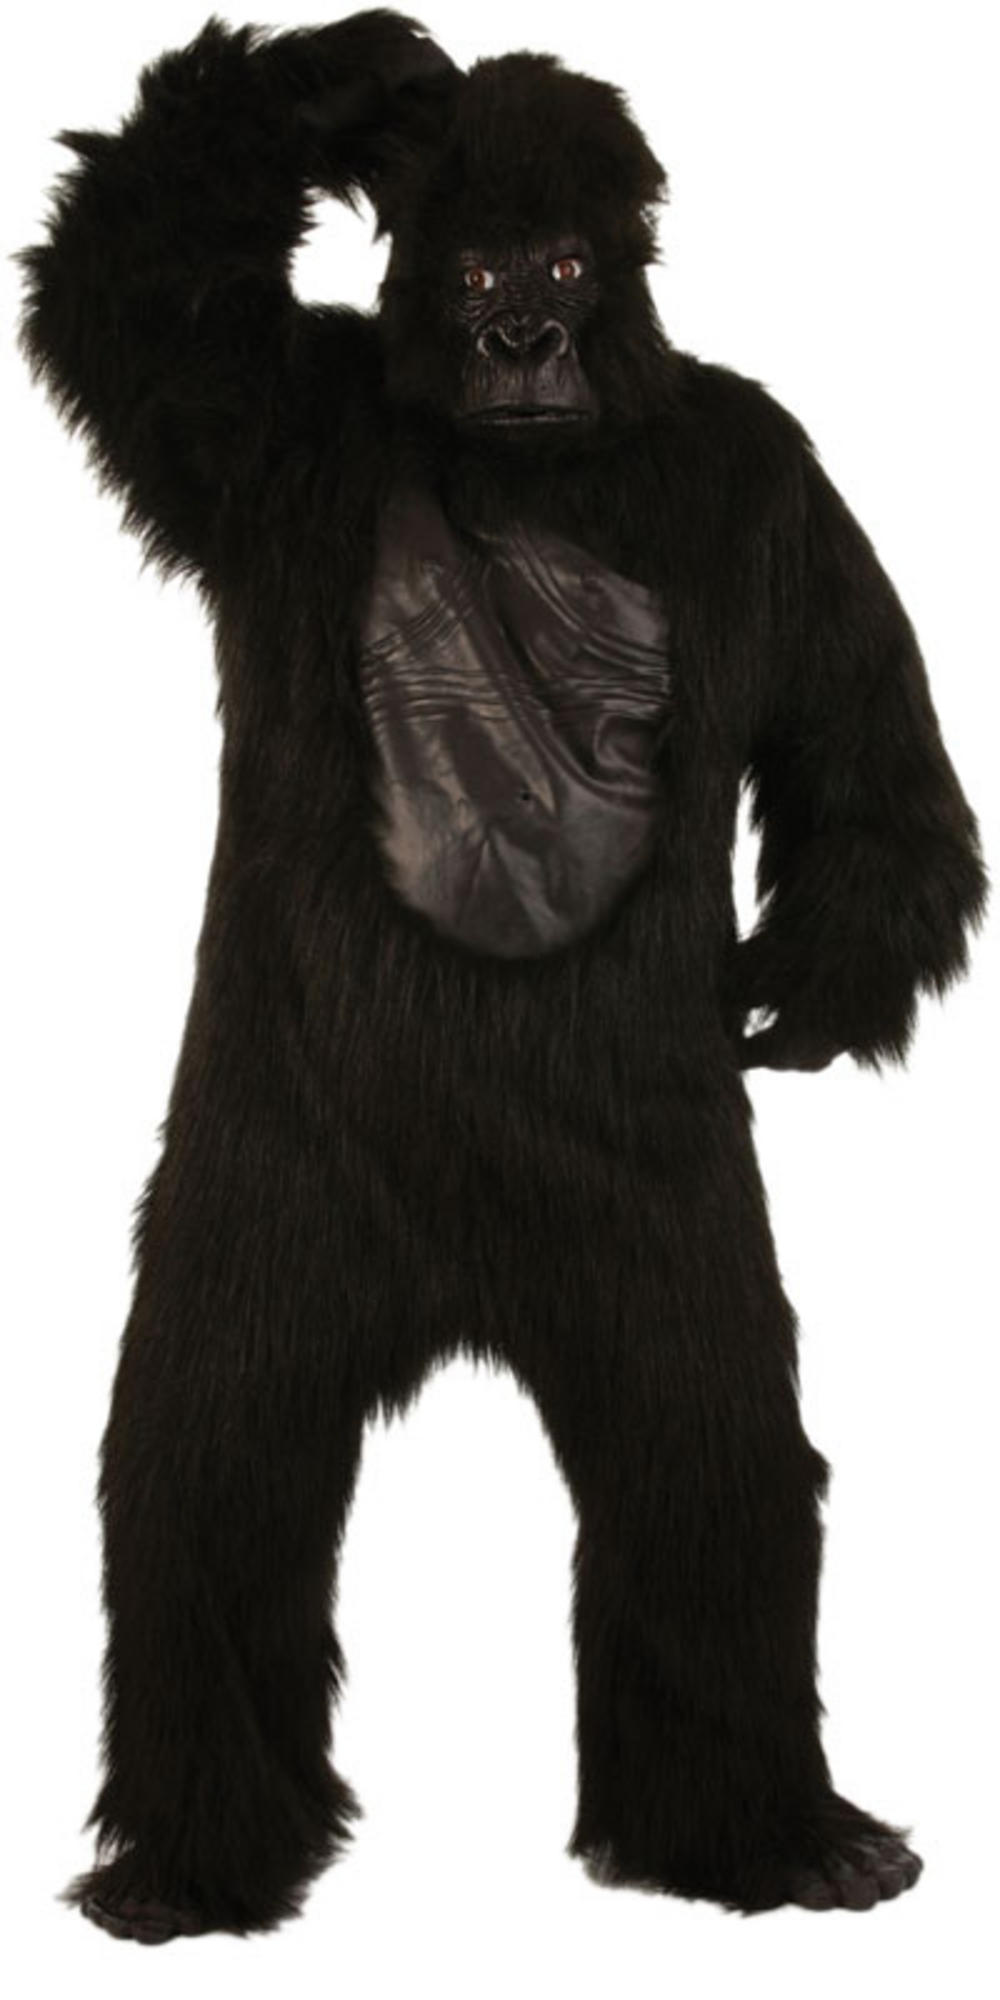 Plus Size Deluxe King Kong Gorilla Costume